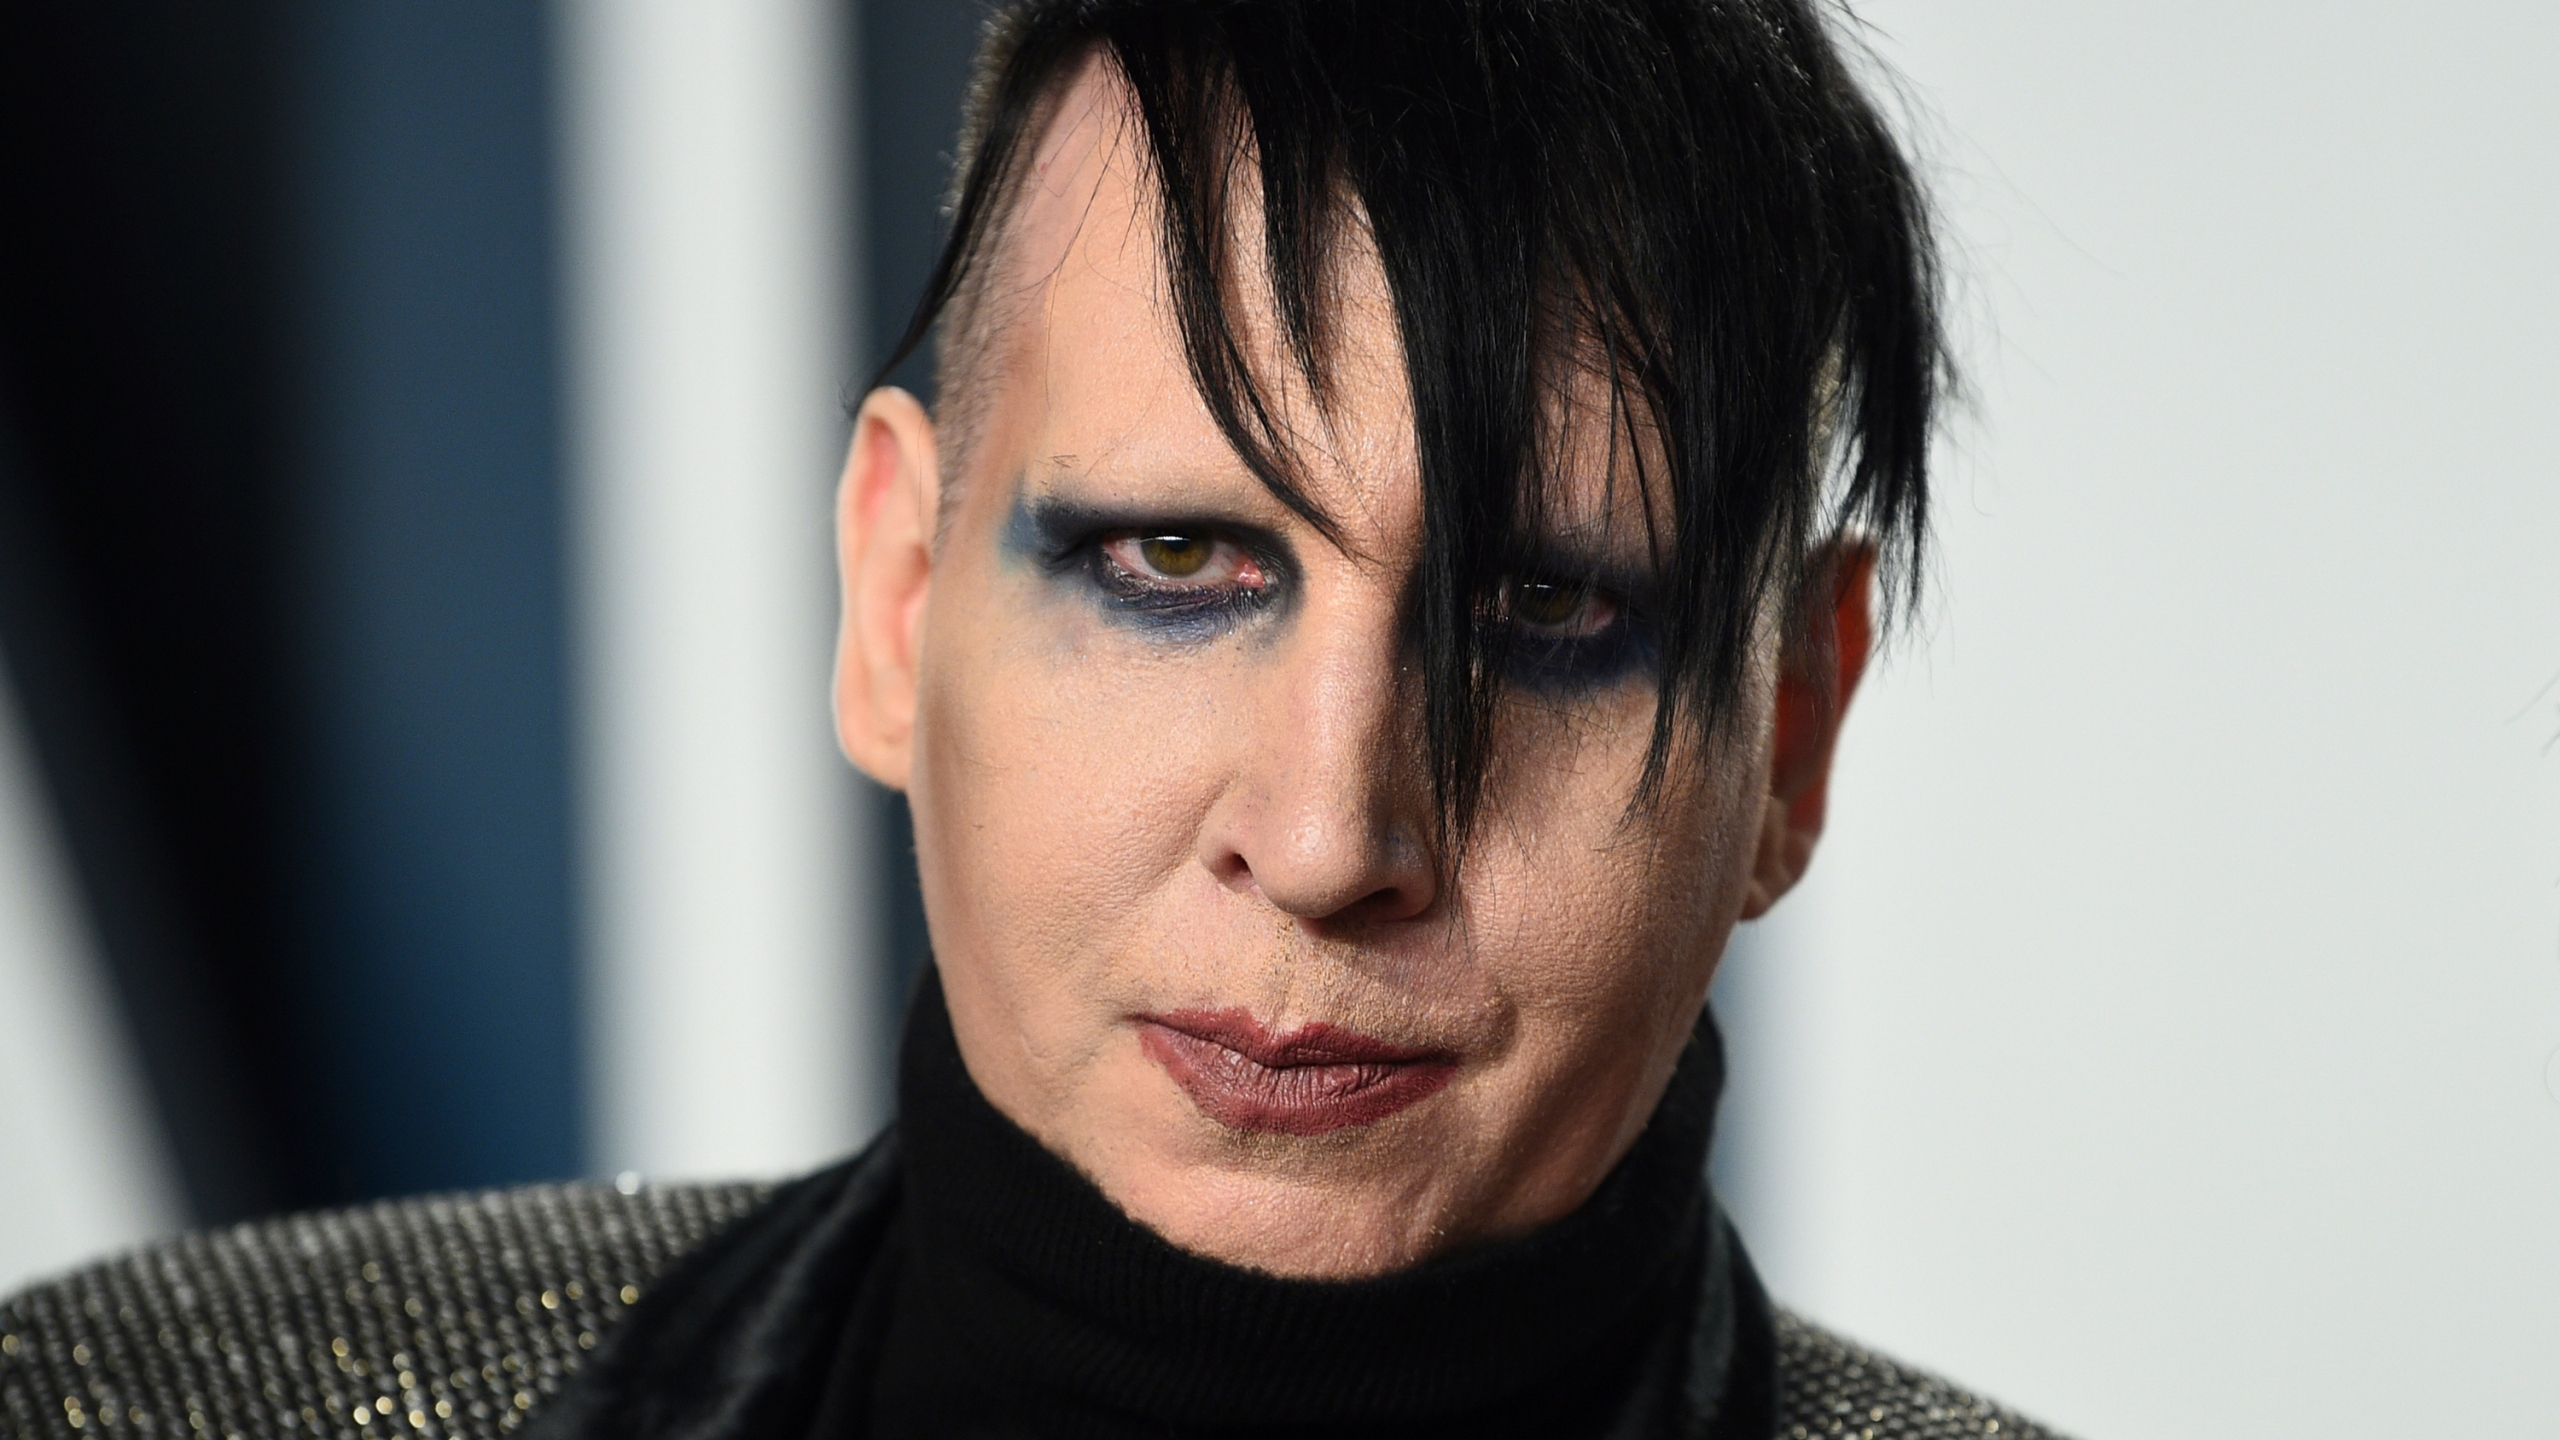 Marilyn Manson arrives at the Vanity Fair Oscar Party on Feb. 9, 2020, in Beverly Hills, Calif. (Evan Agostini/Invision/AP, File)